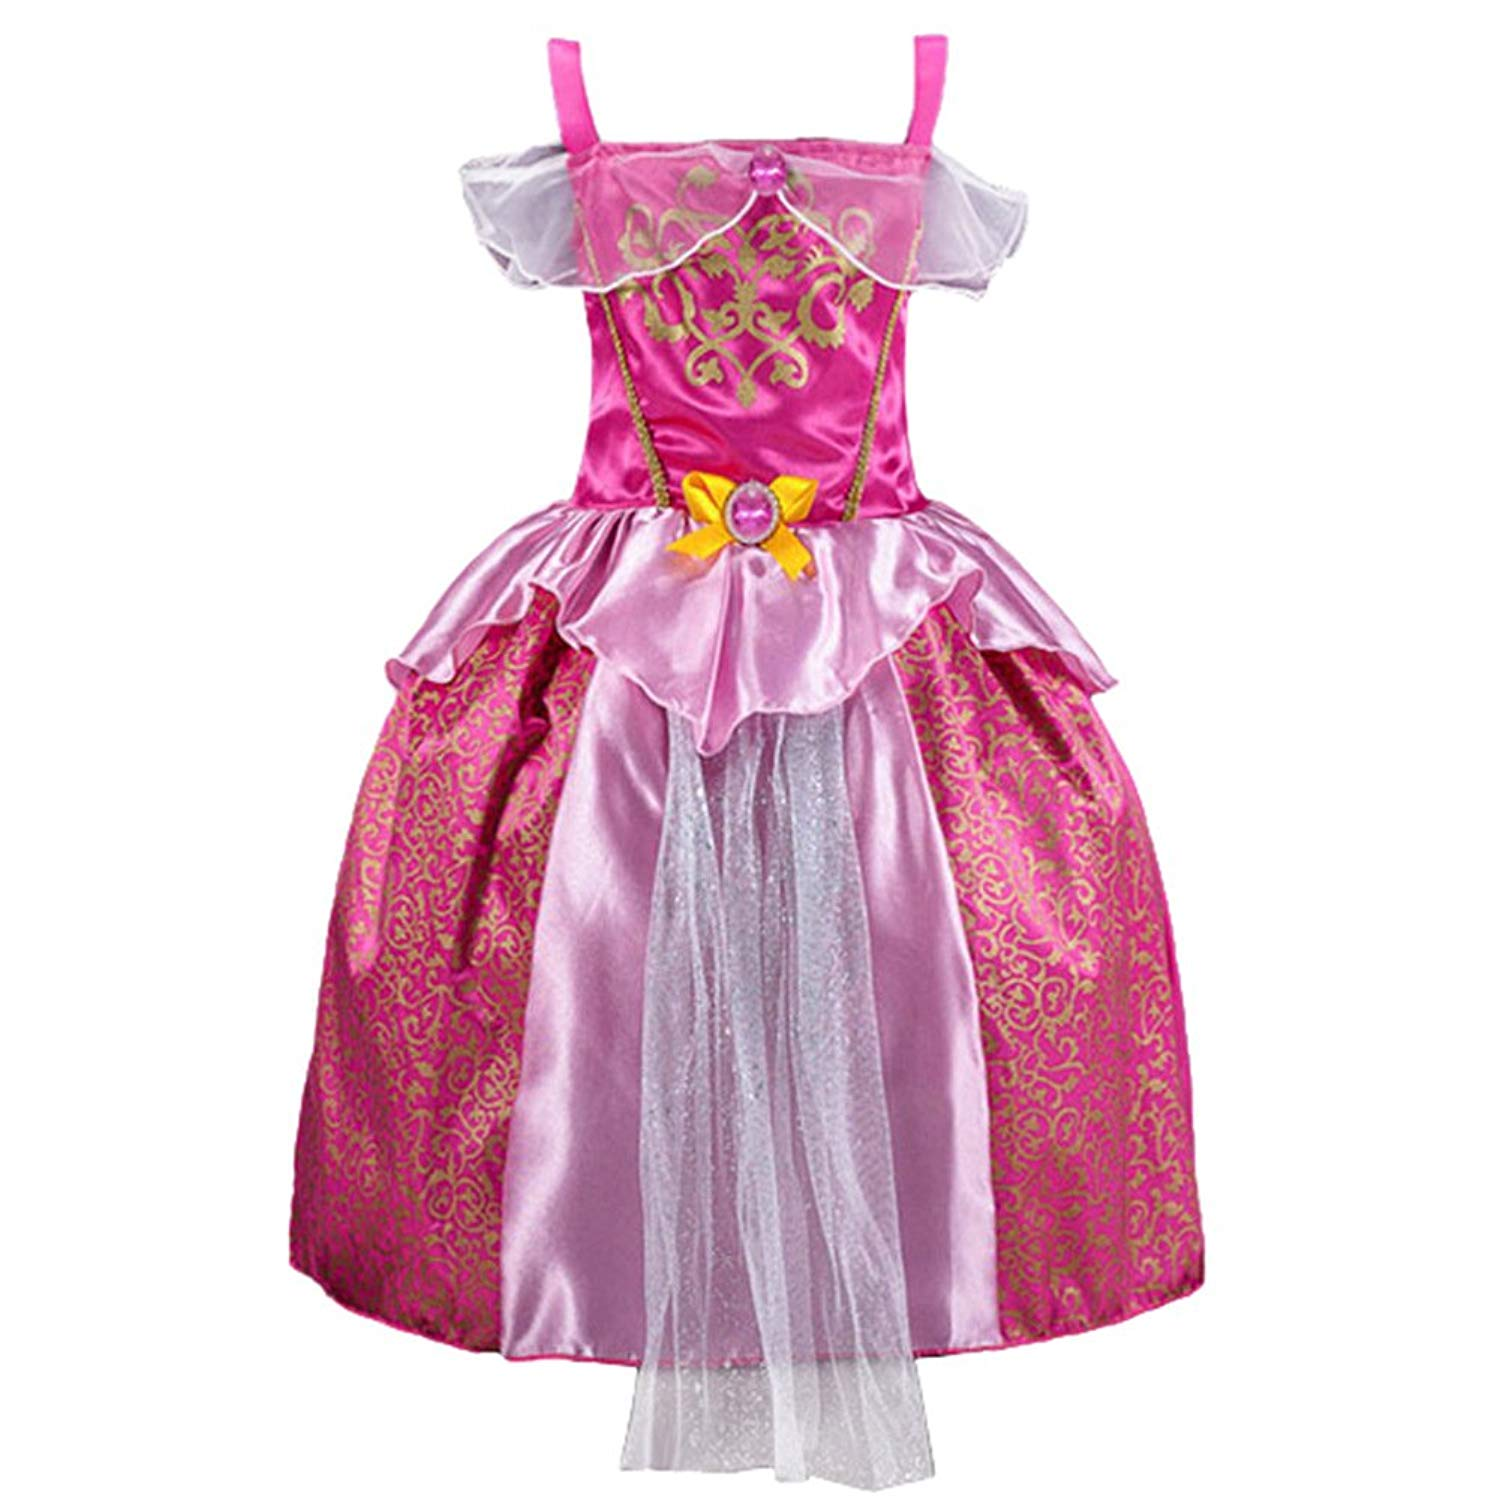 0e033c855bf2 Get Quotations · JiaDuo Baby Girls Princess Aurora Dress Up Costume Party  Outfit